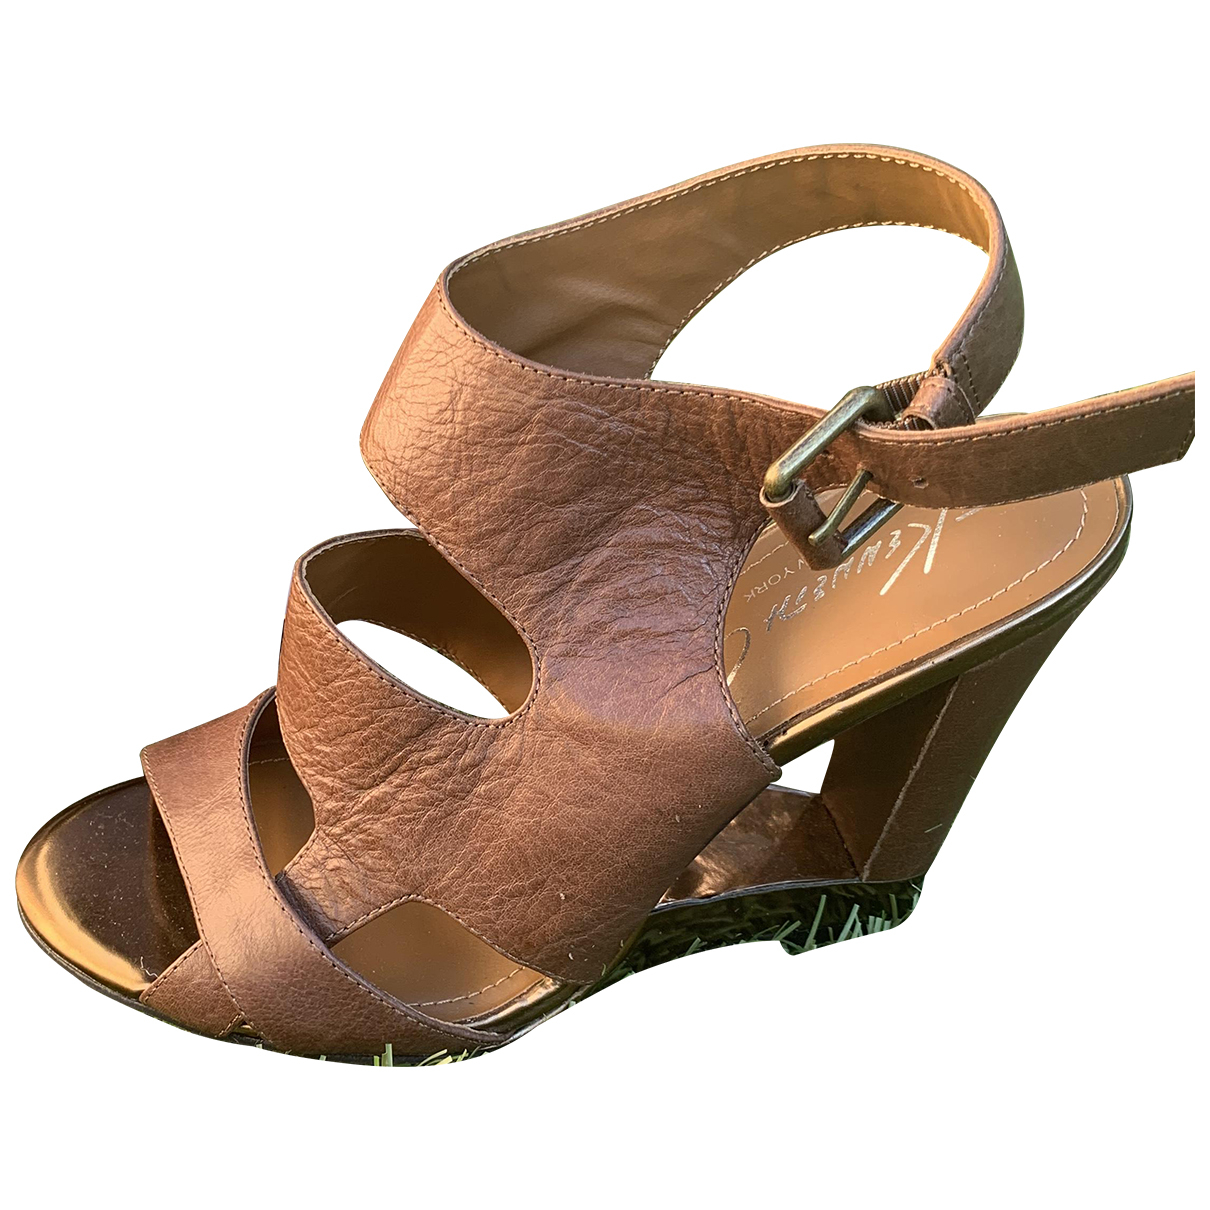 Kenneth Cole N Brown Leather Sandals for Women 38 IT